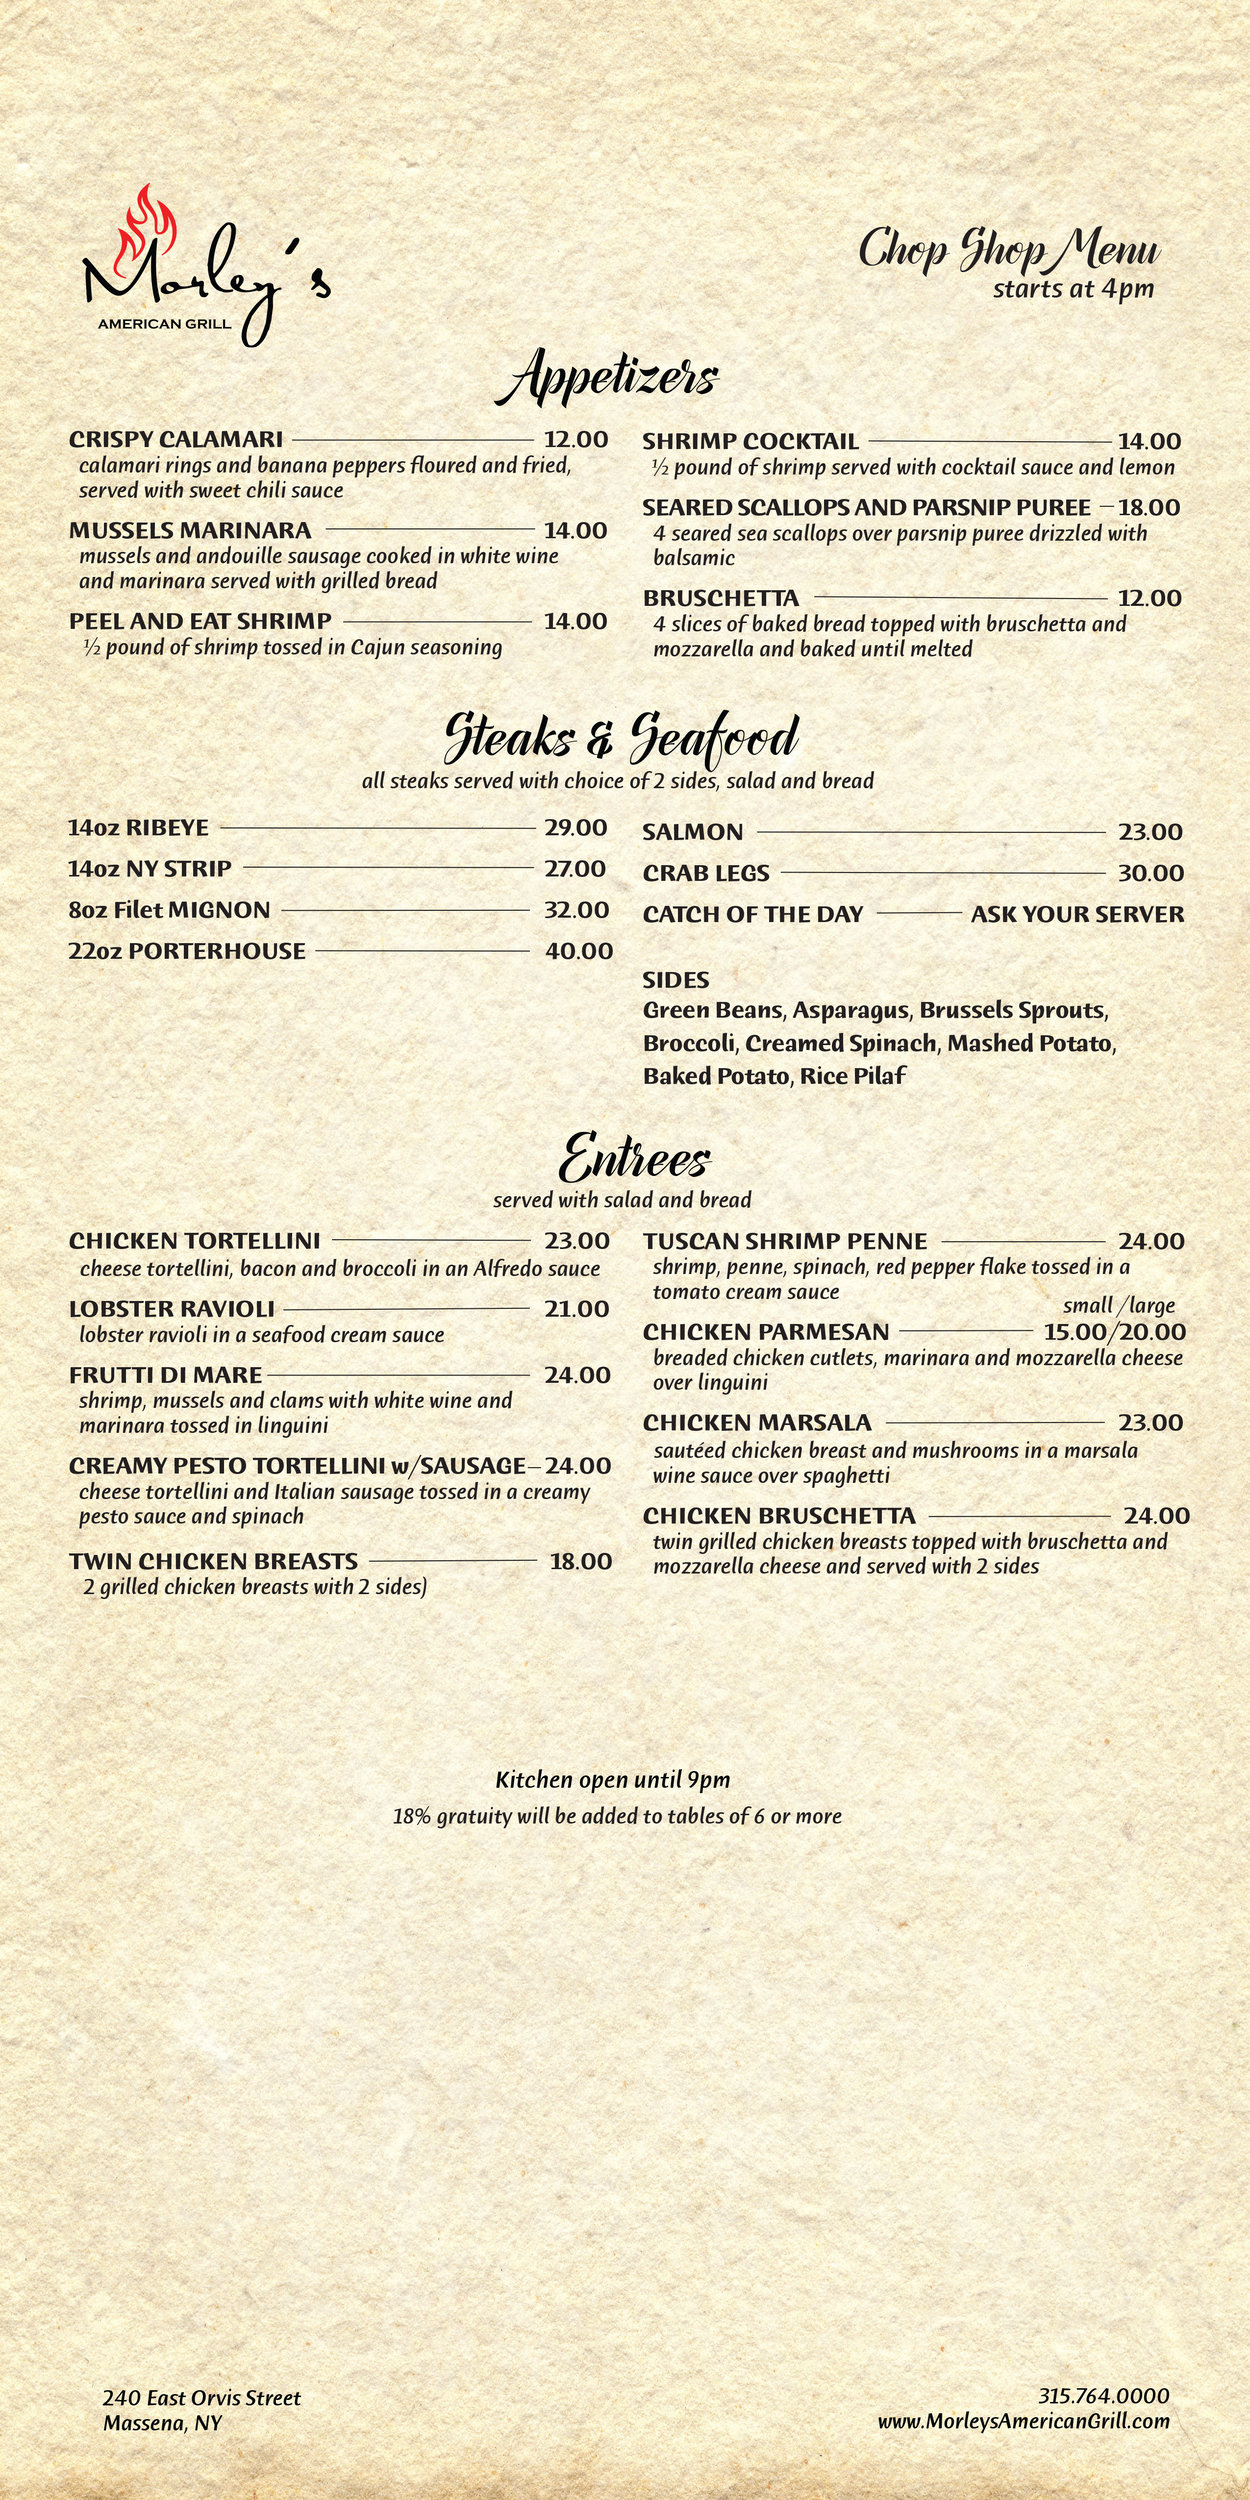 morleys chop menu 2_22_21